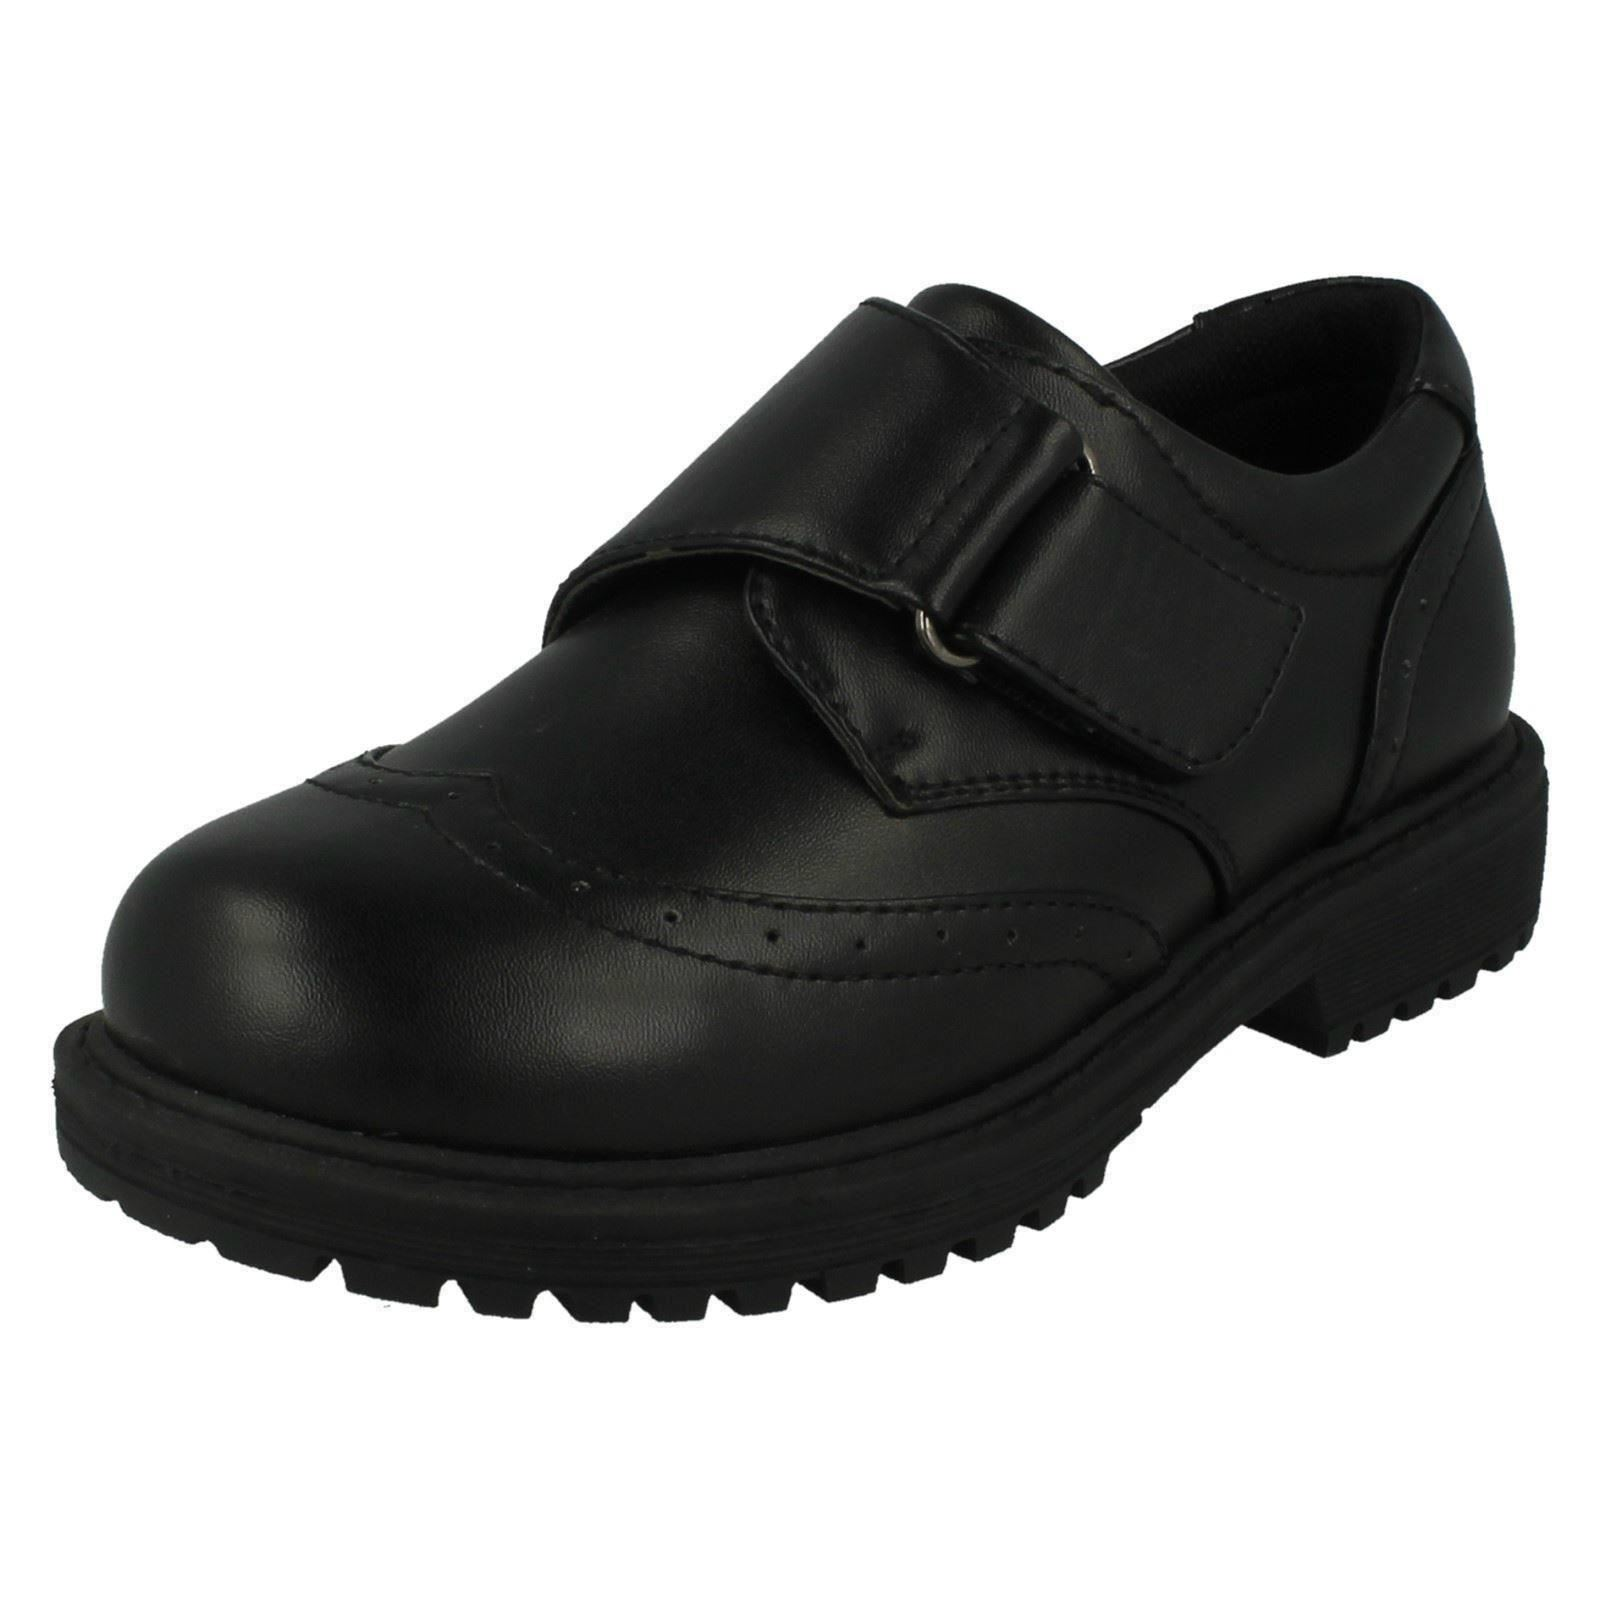 Cool 4 School Boys School Shoes